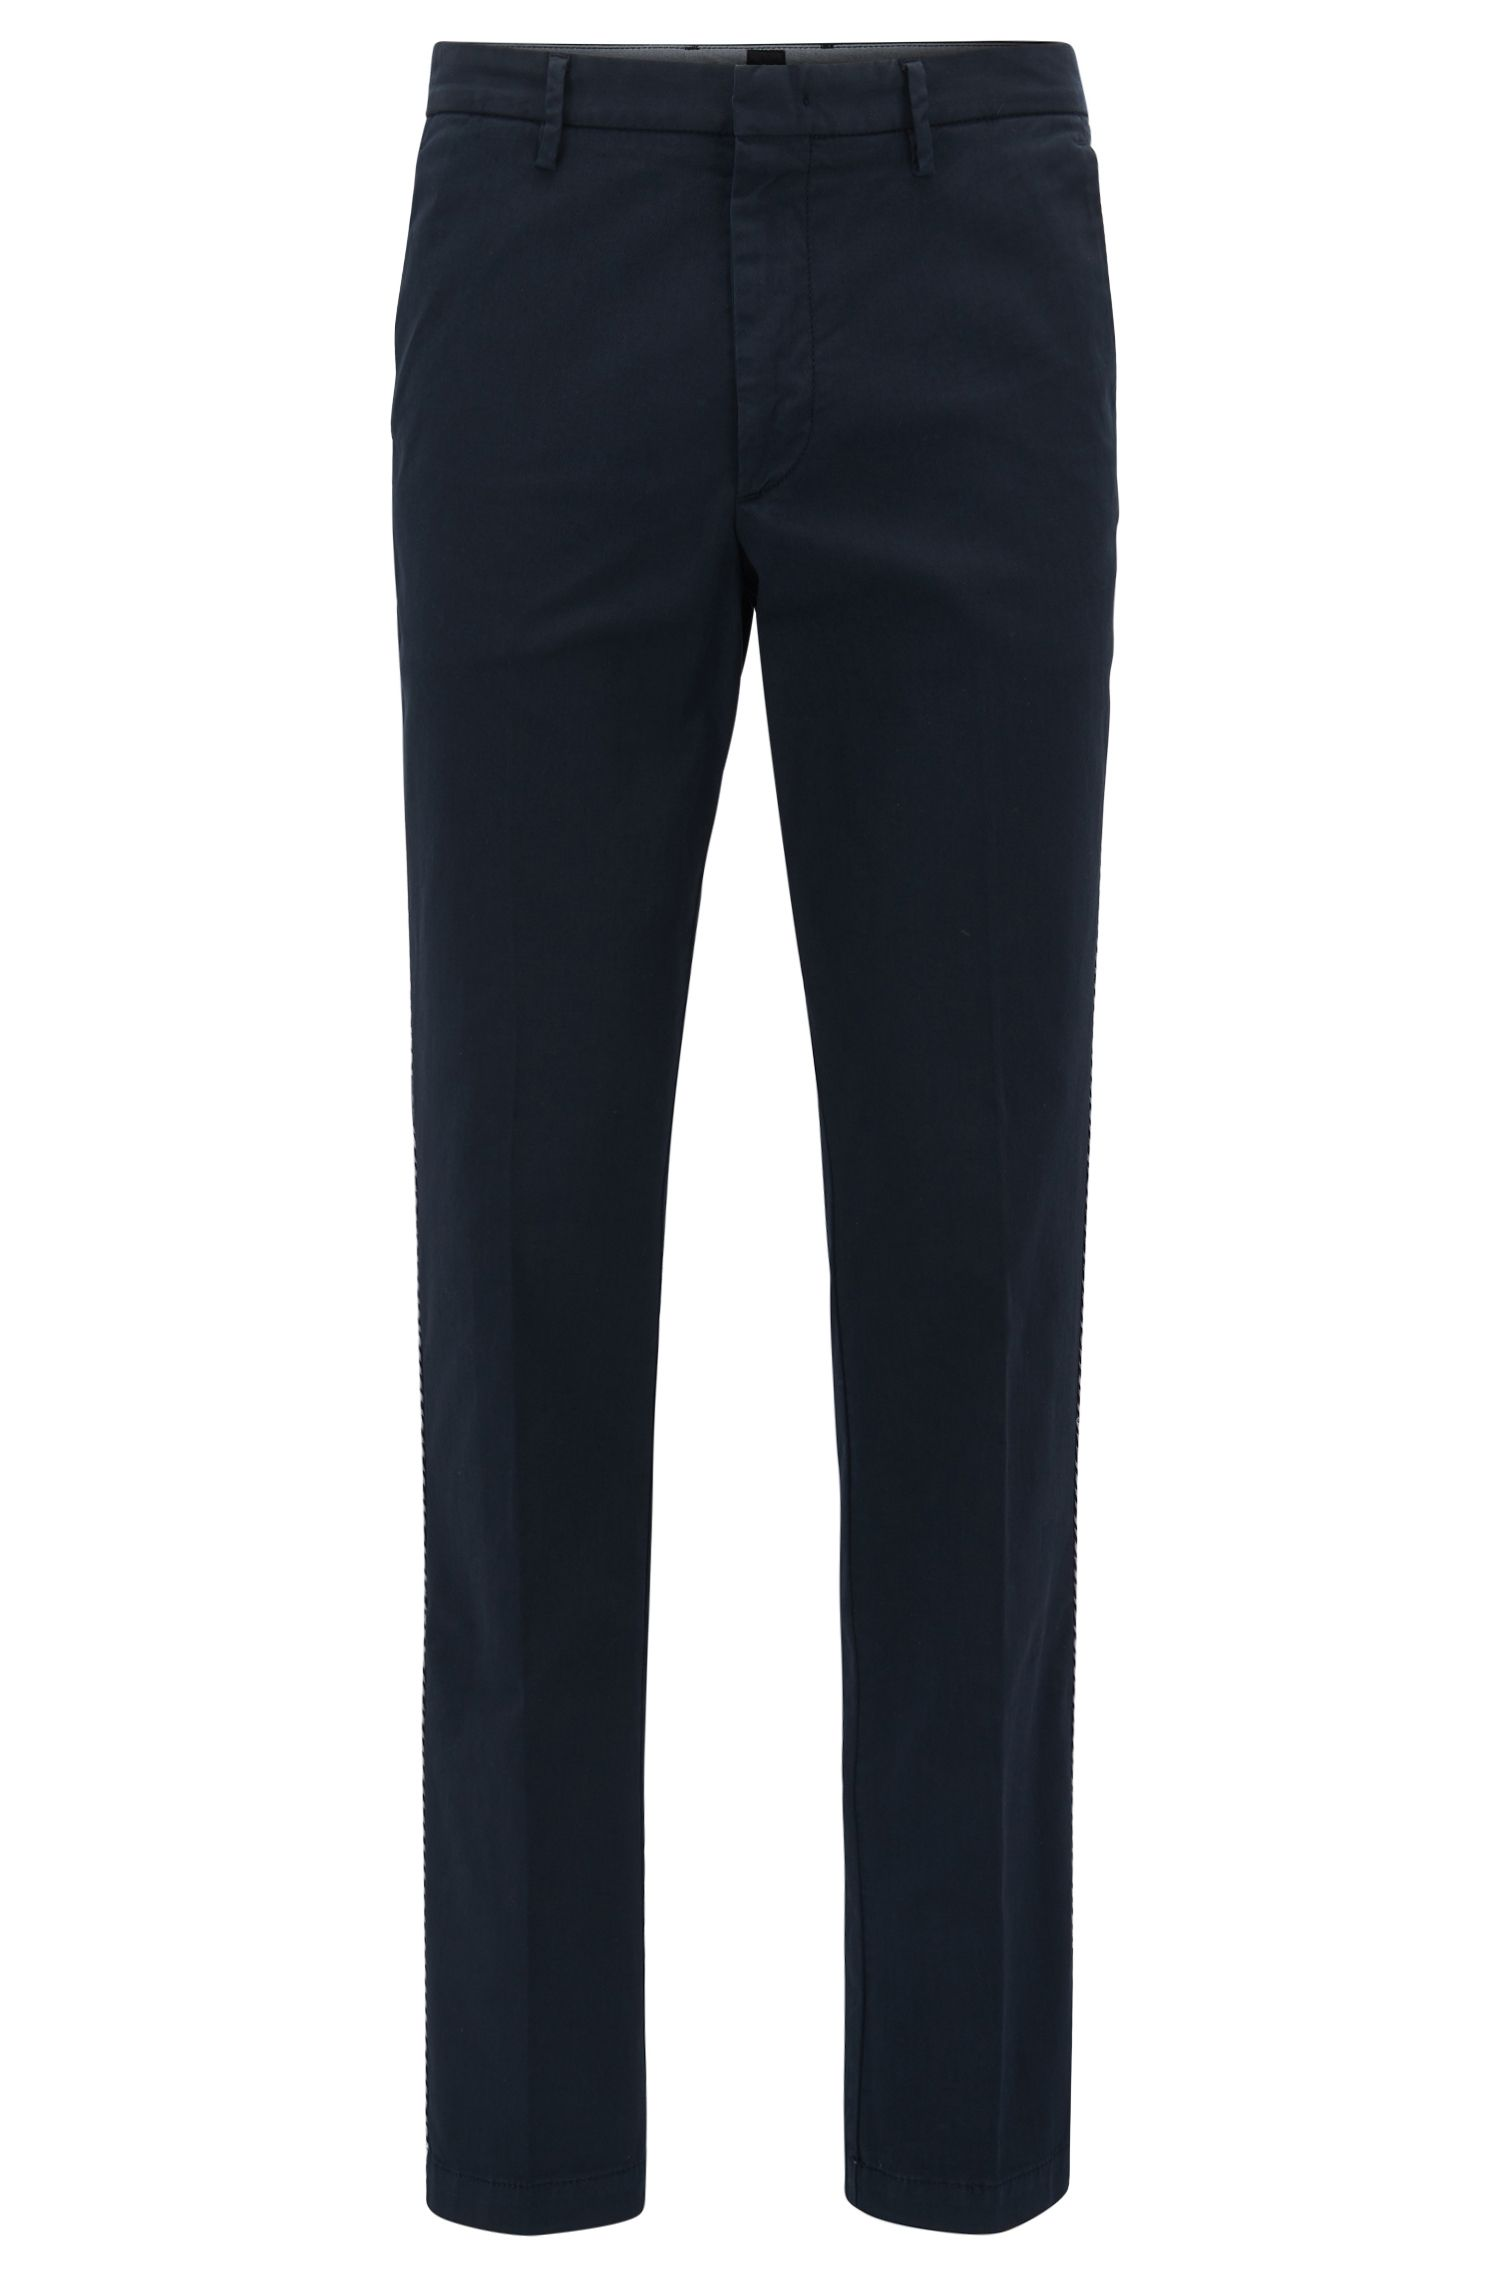 Stretch Cotton Gabardine Pant, Tapered Fit | Kaito Rope D, Dark Blue